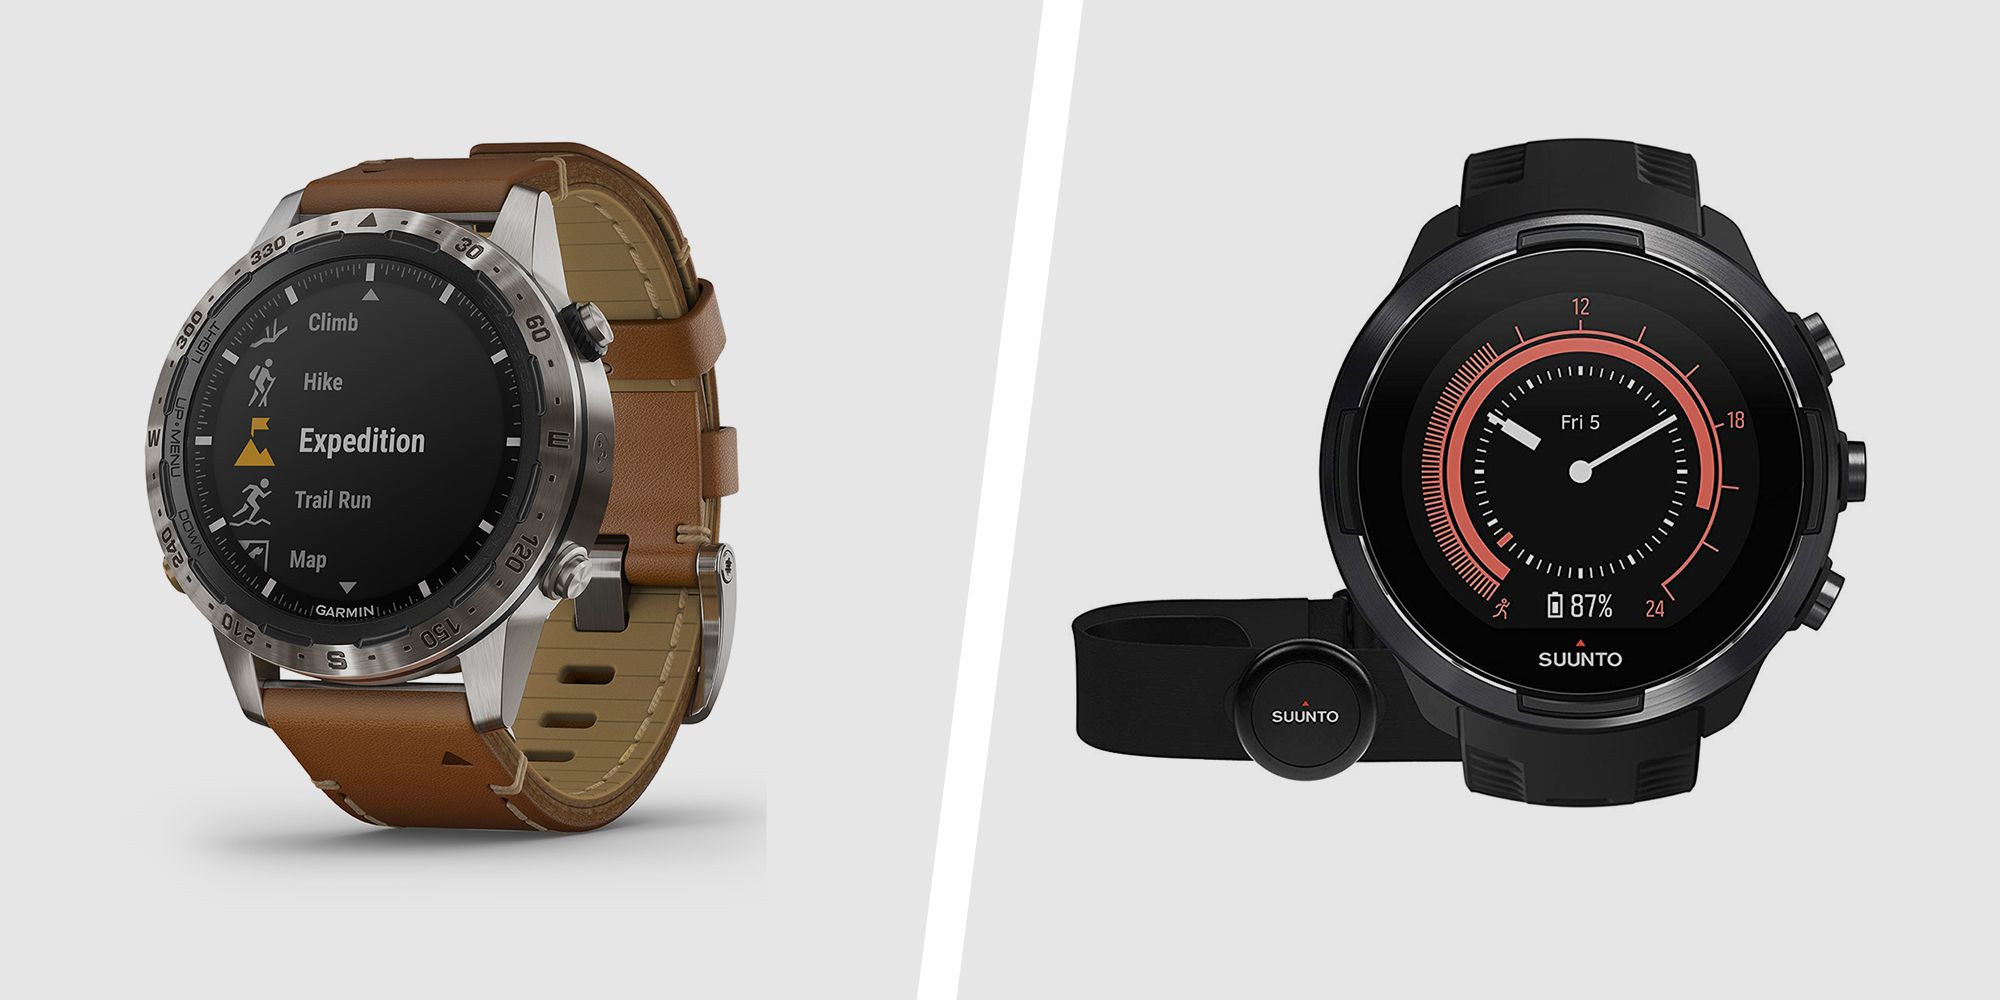 The 10 Best Outdoor Watches for Any Budget